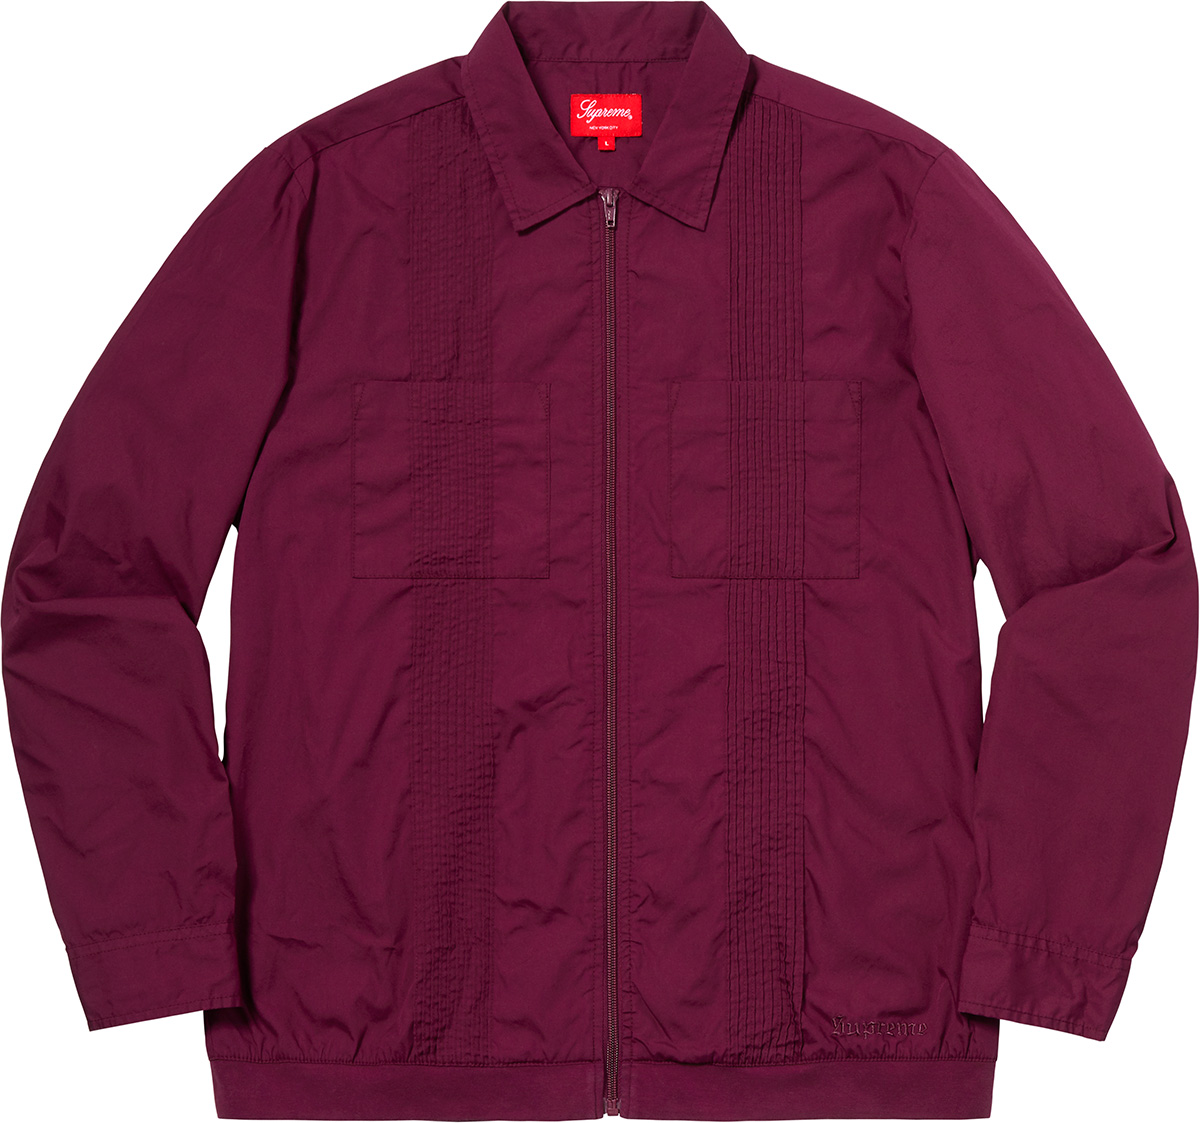 supreme-18aw-fall-winter-pin-tuck-zip-up-shirt